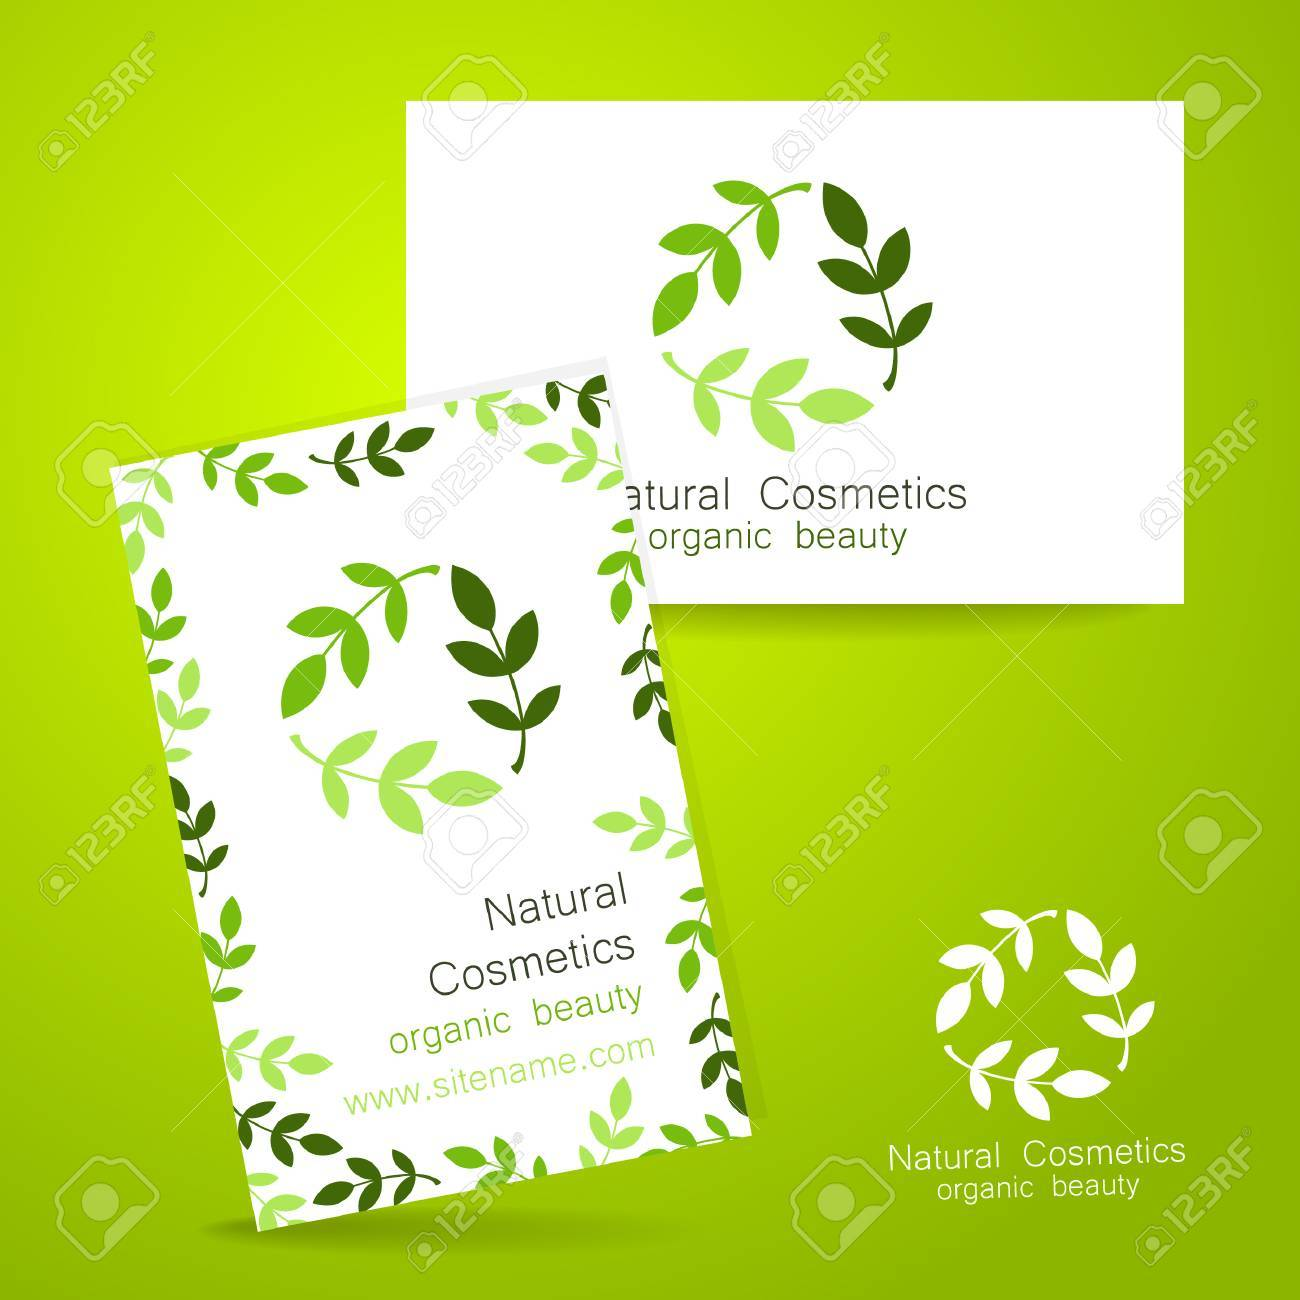 natural cosmetics logo template design for organic bio products